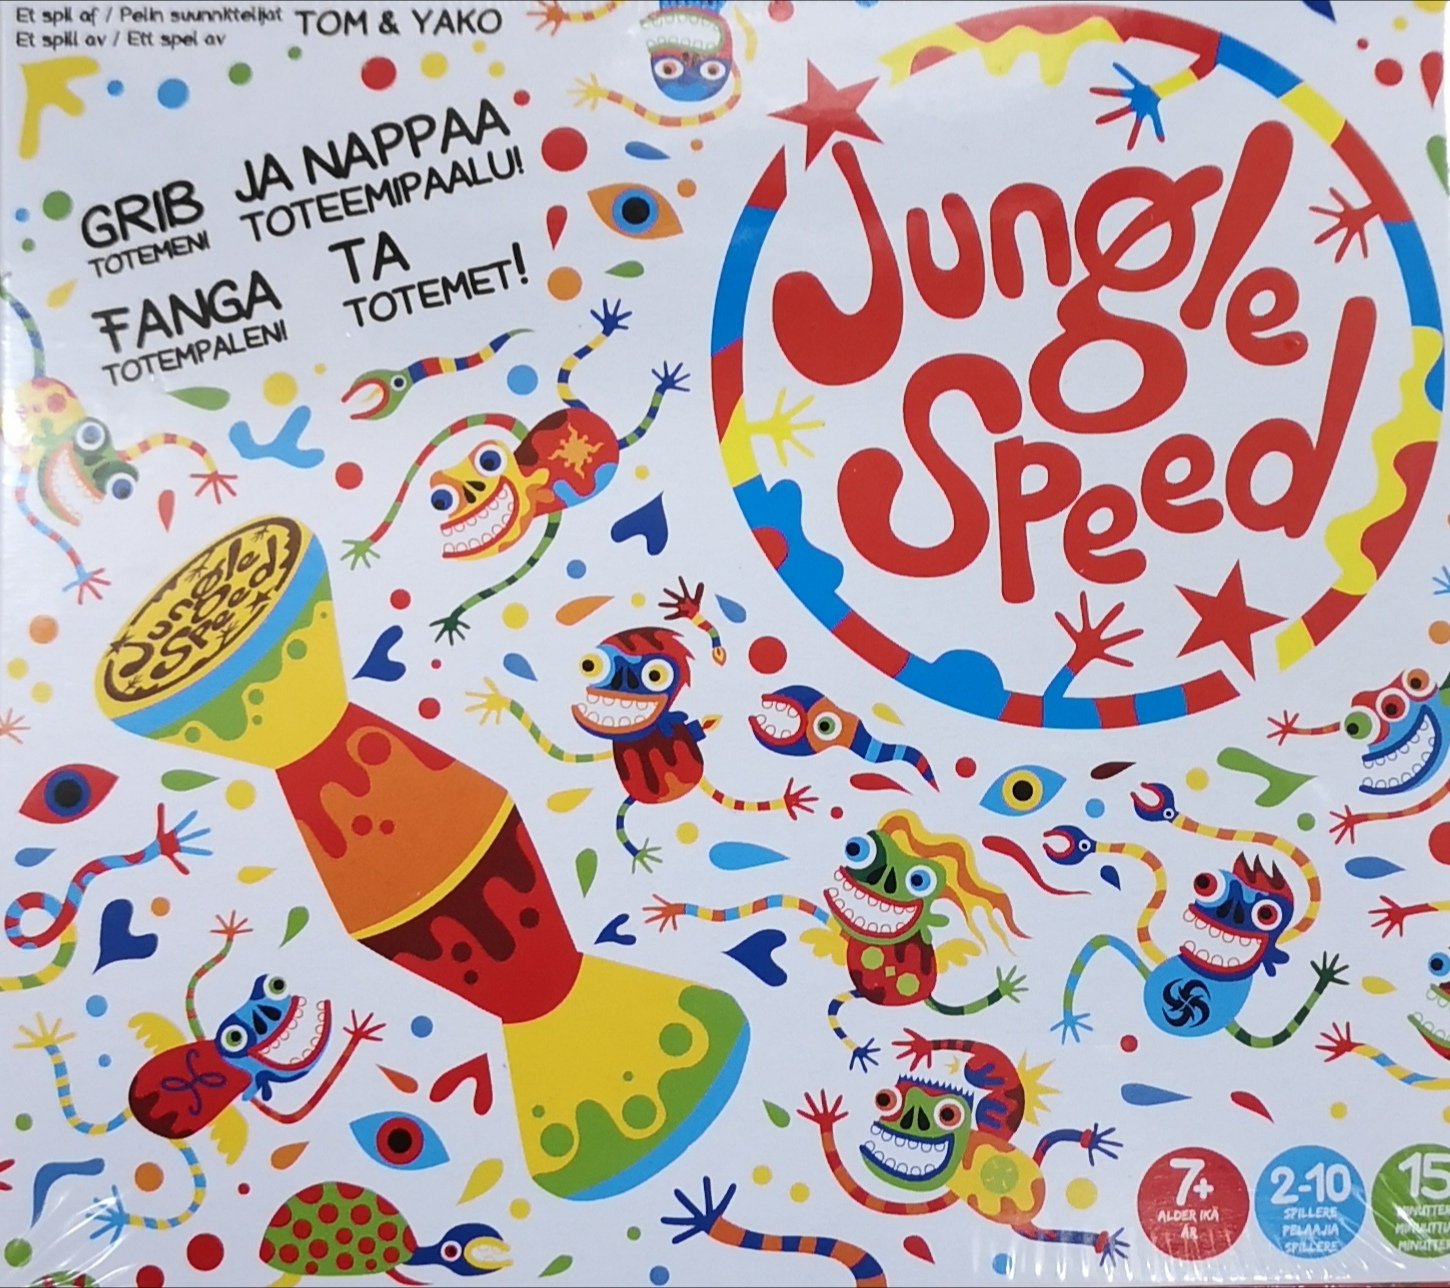 Jungle Speed (Svenska)